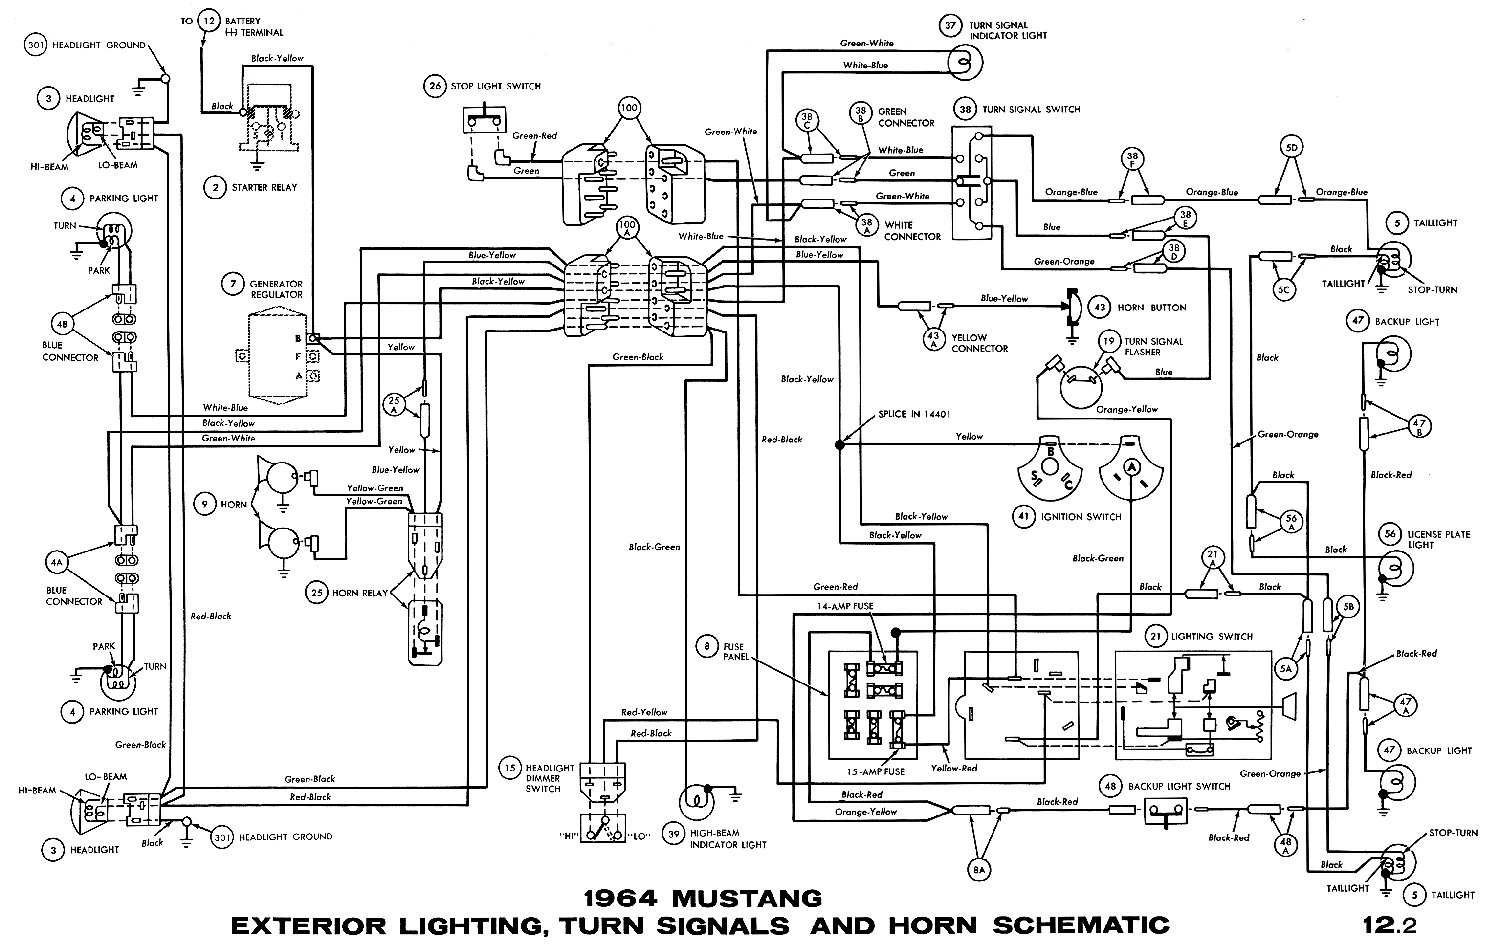 hight resolution of 1964 mustang wiring diagrams average joe restoration 1964 mustang tail light wiring diagram